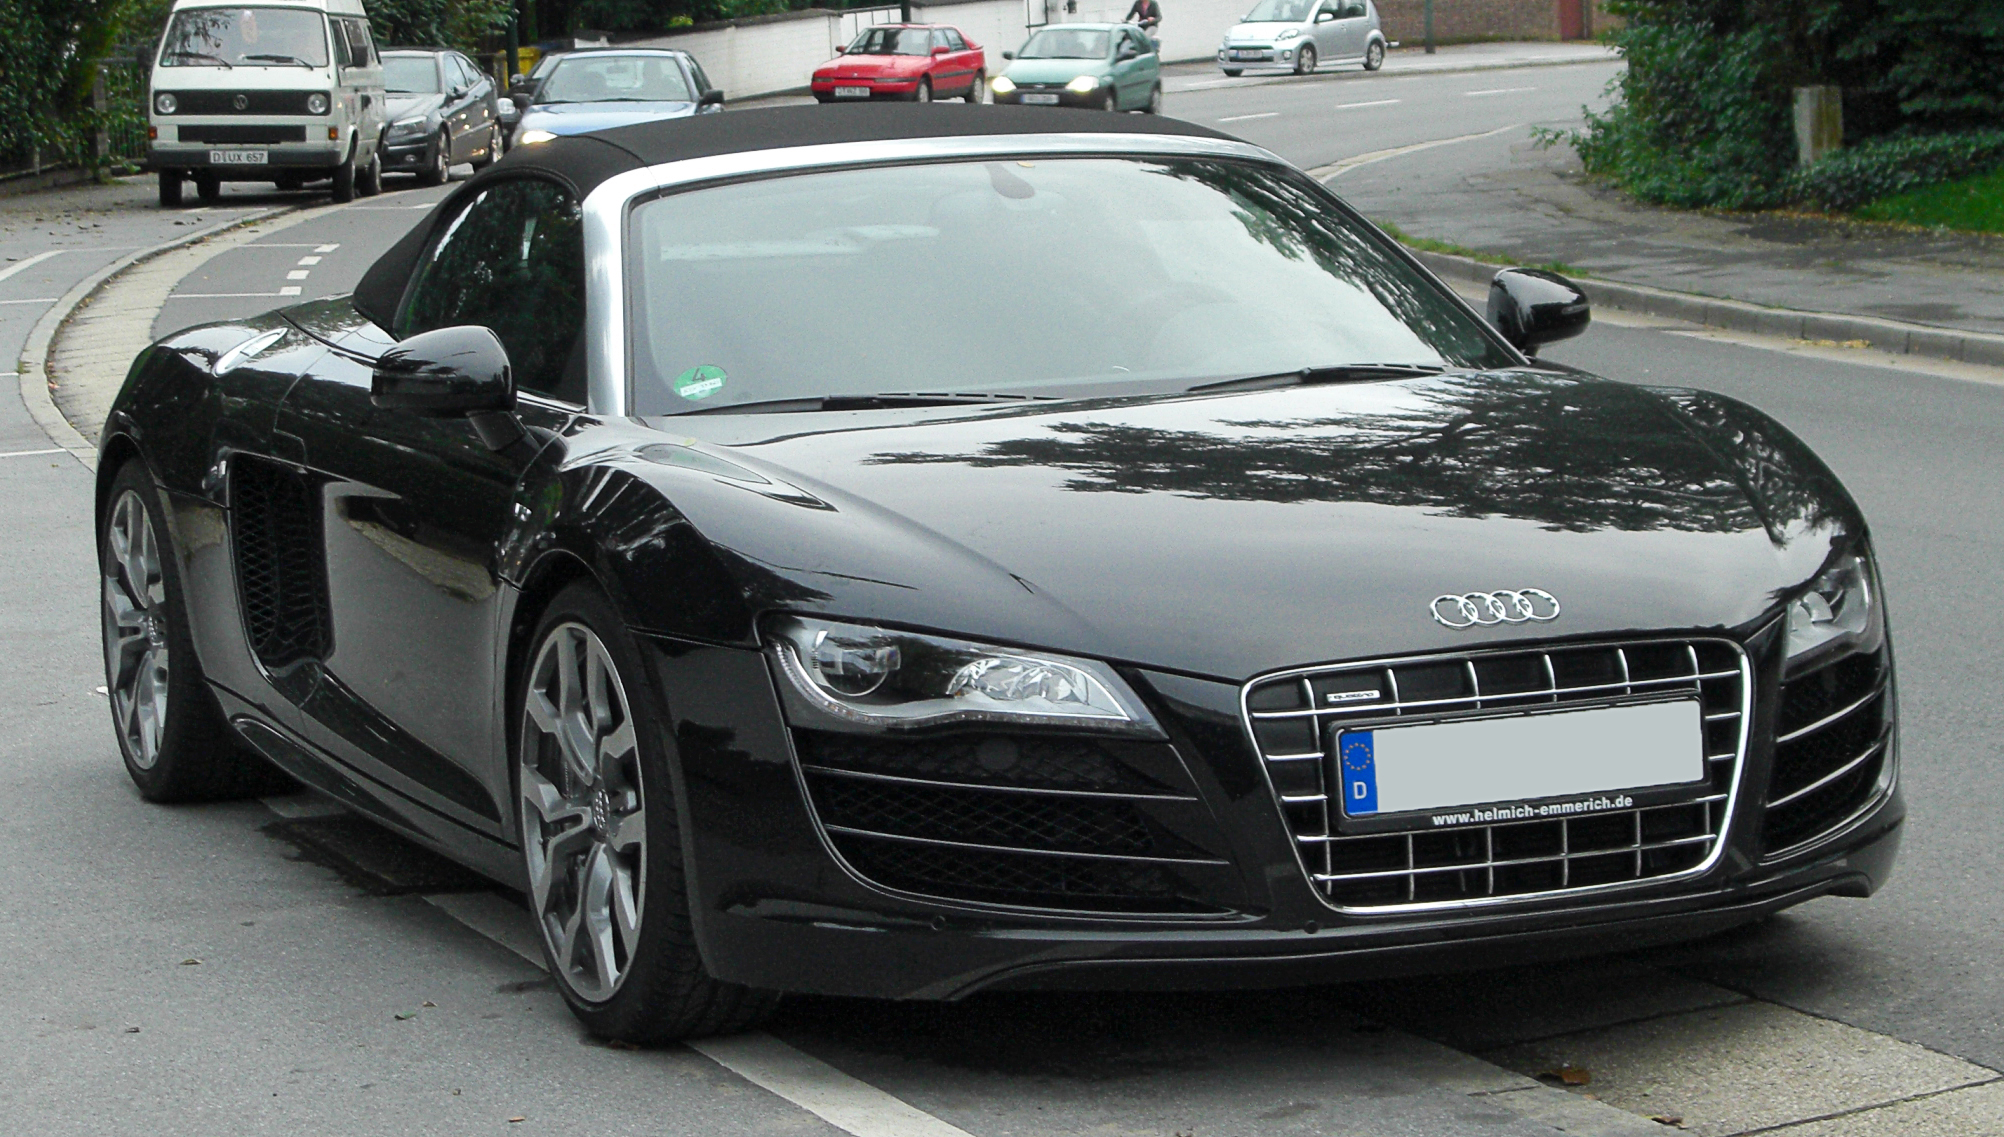 audi r8 spyder photos 6 on better parts ltd. Black Bedroom Furniture Sets. Home Design Ideas